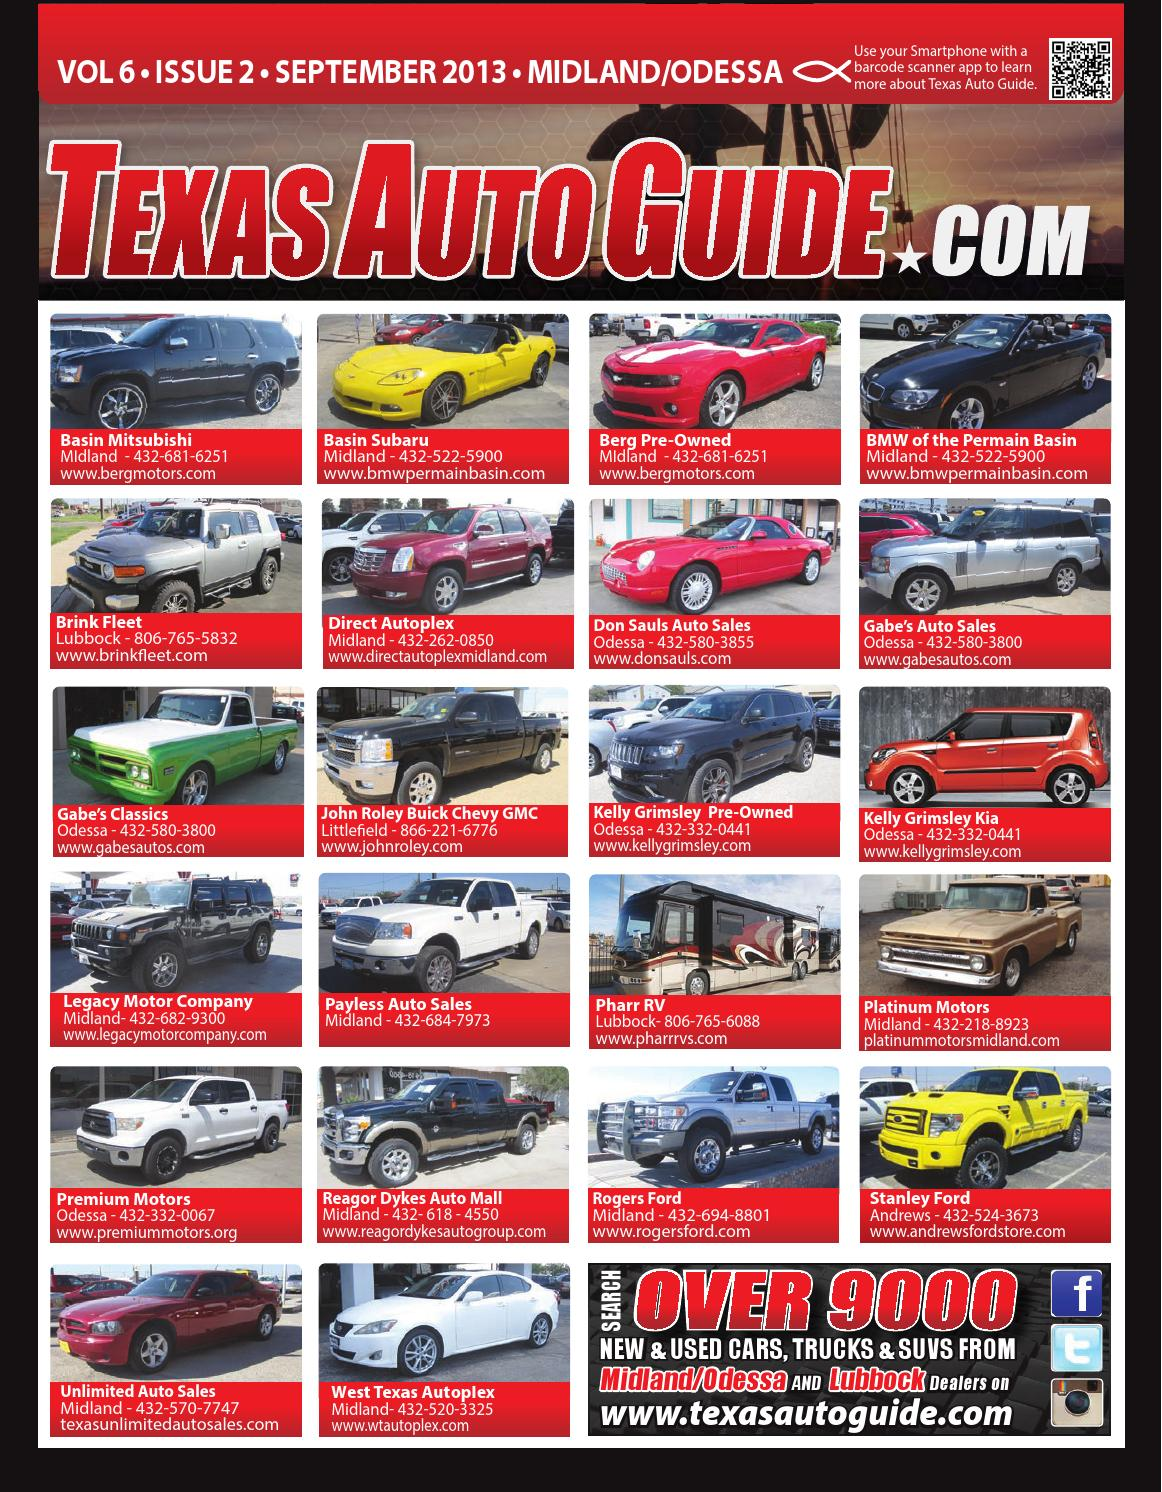 texas auto guide midland odessa by texas auto guide texas auto guide midland odessa 2013 by texas auto guide issuu